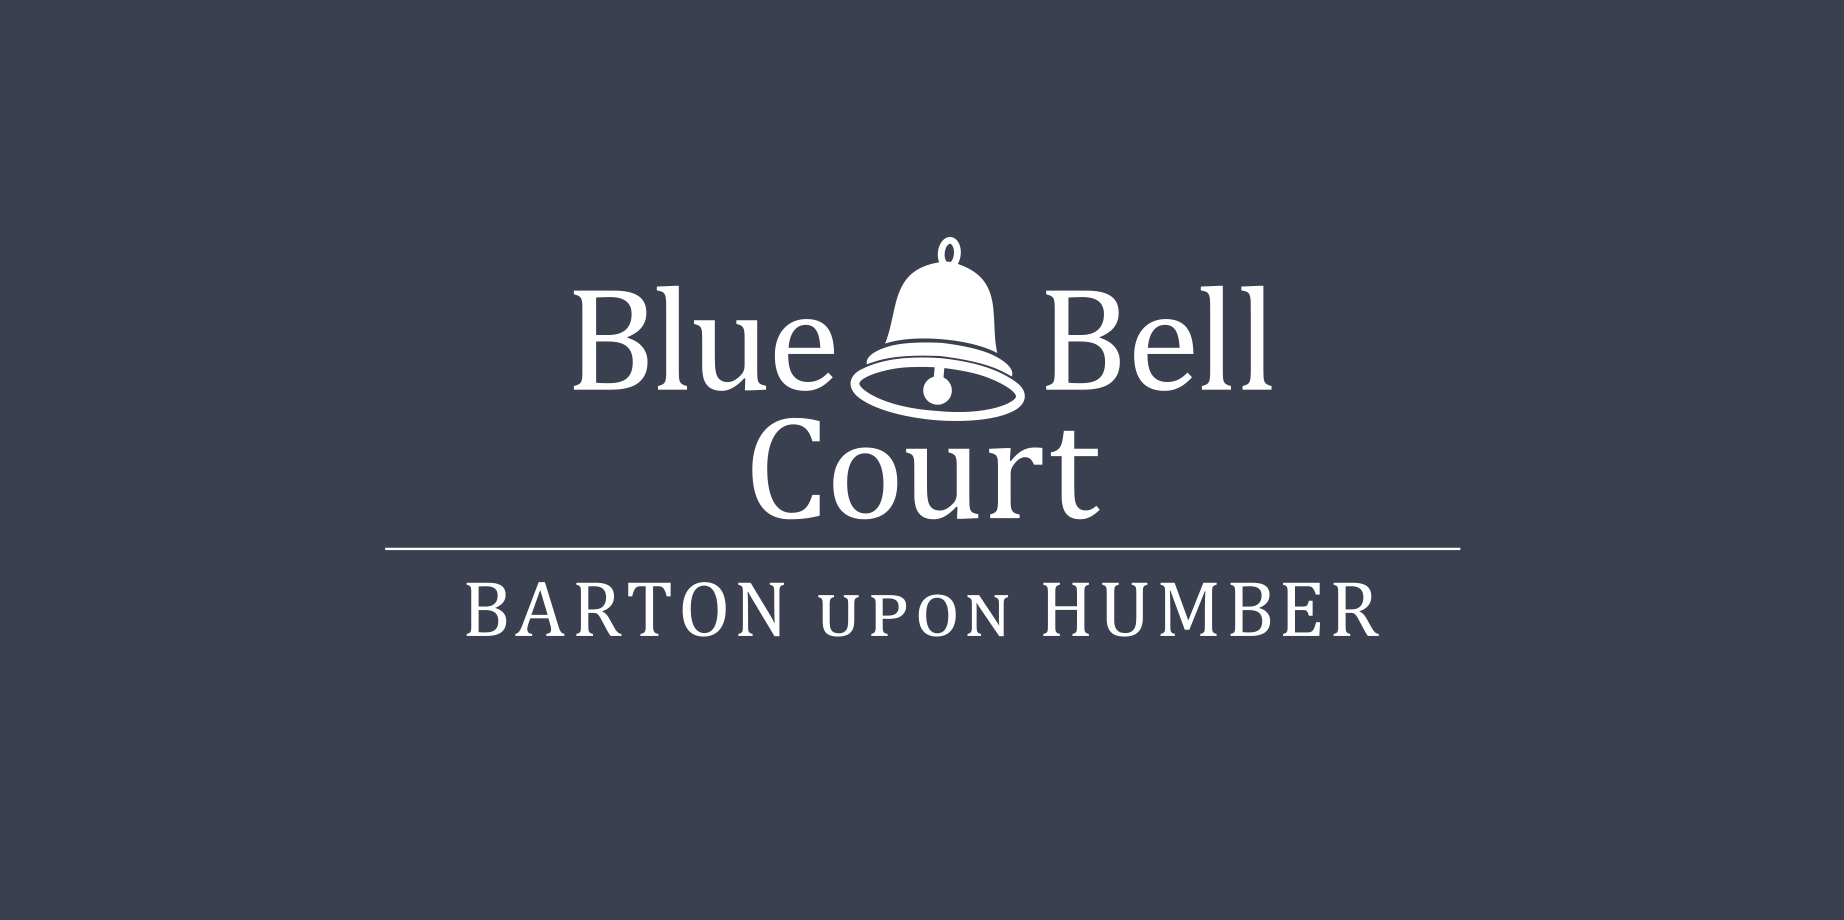 Blue Bell Court - Barton upon Humber